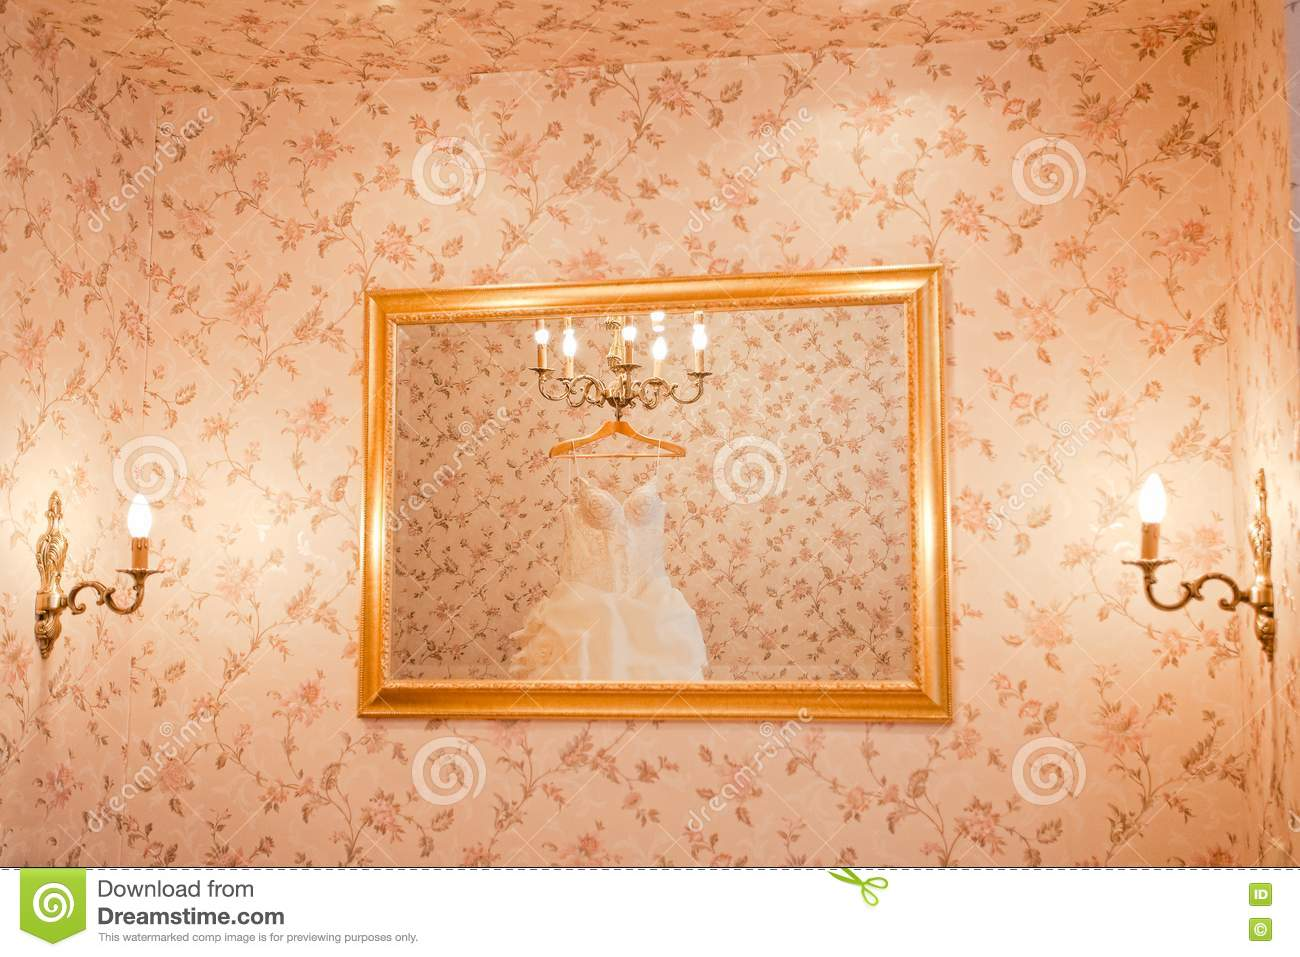 White wedding dress is reflecting in the mirror on the wall